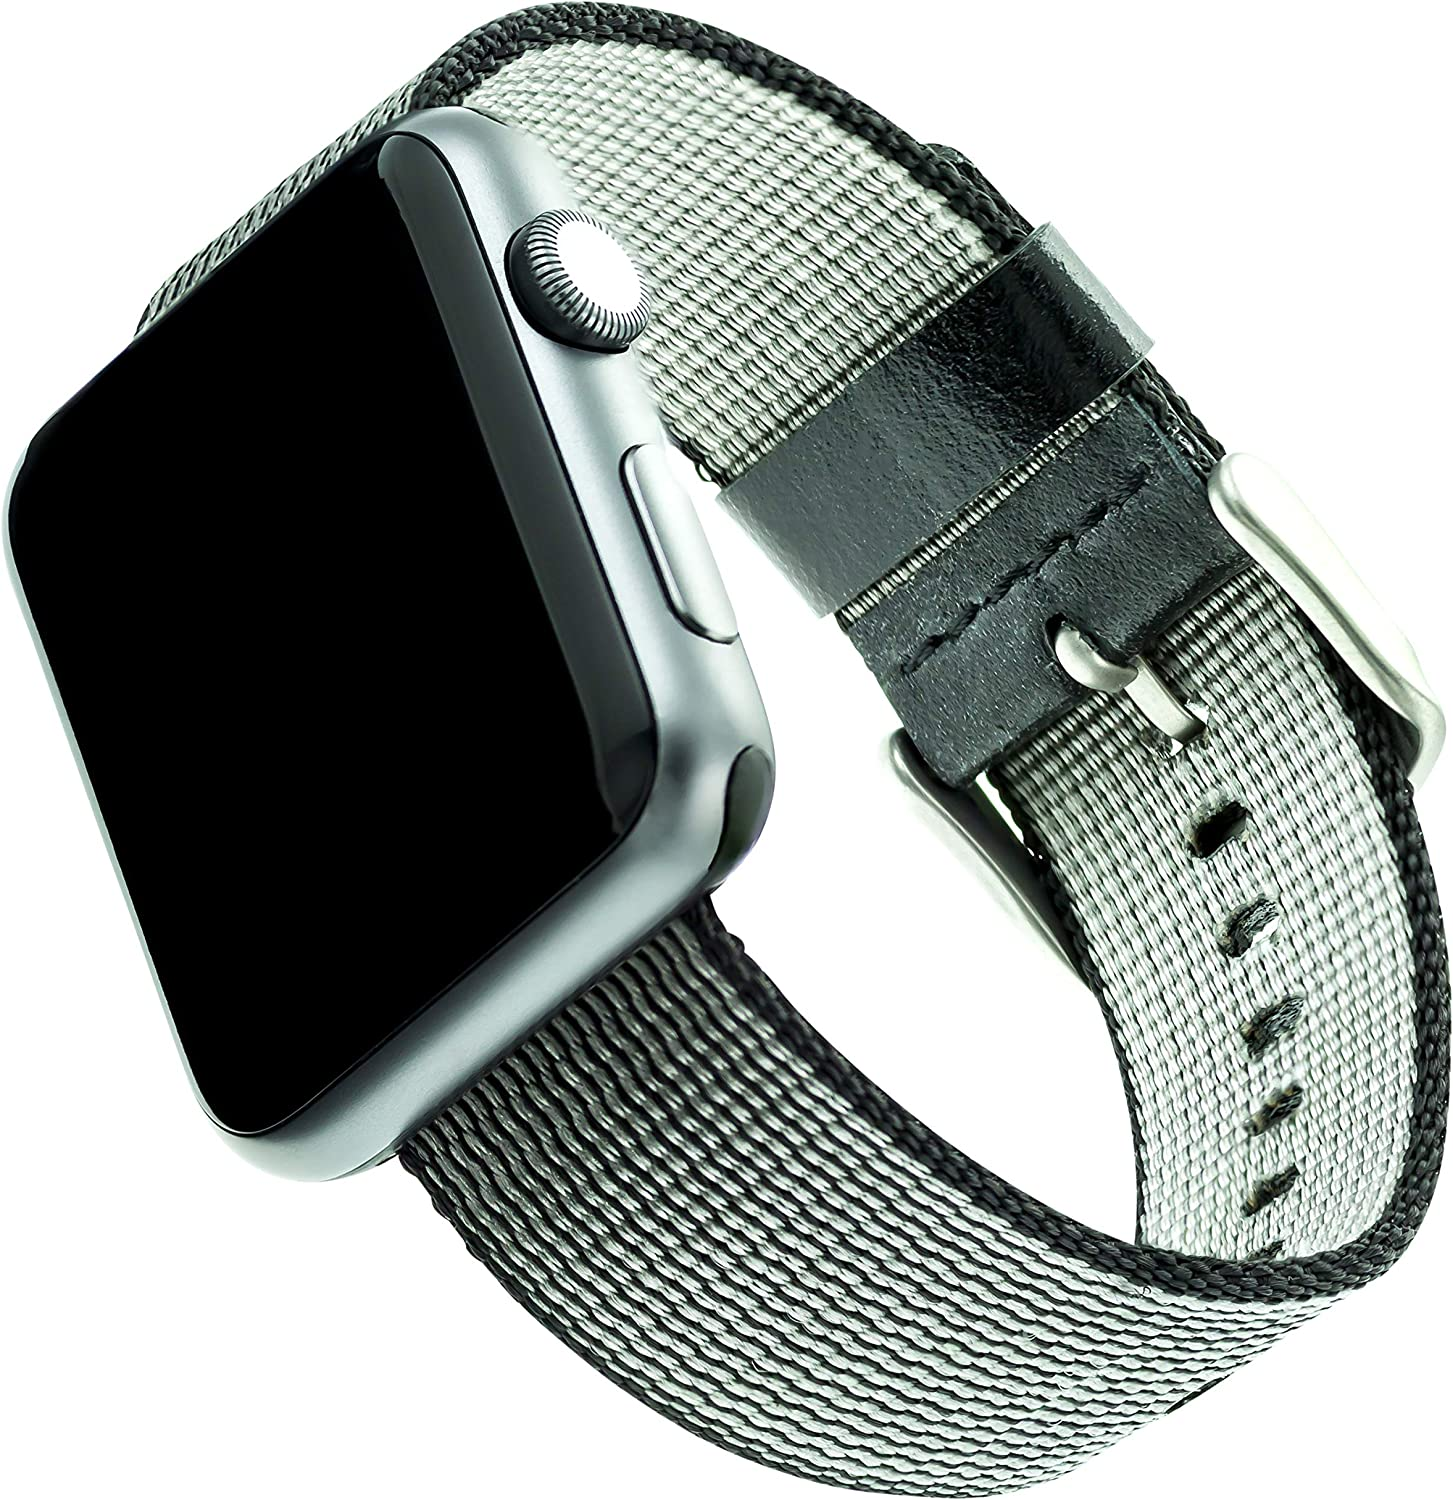 WITHit Nylon Replacement Band for Apple Watch, 38/40mm, Black – Secure, Adjustable Stainless-Steel Buckle Closure, Apple Watch Band Replacement, Fits Most Wrists